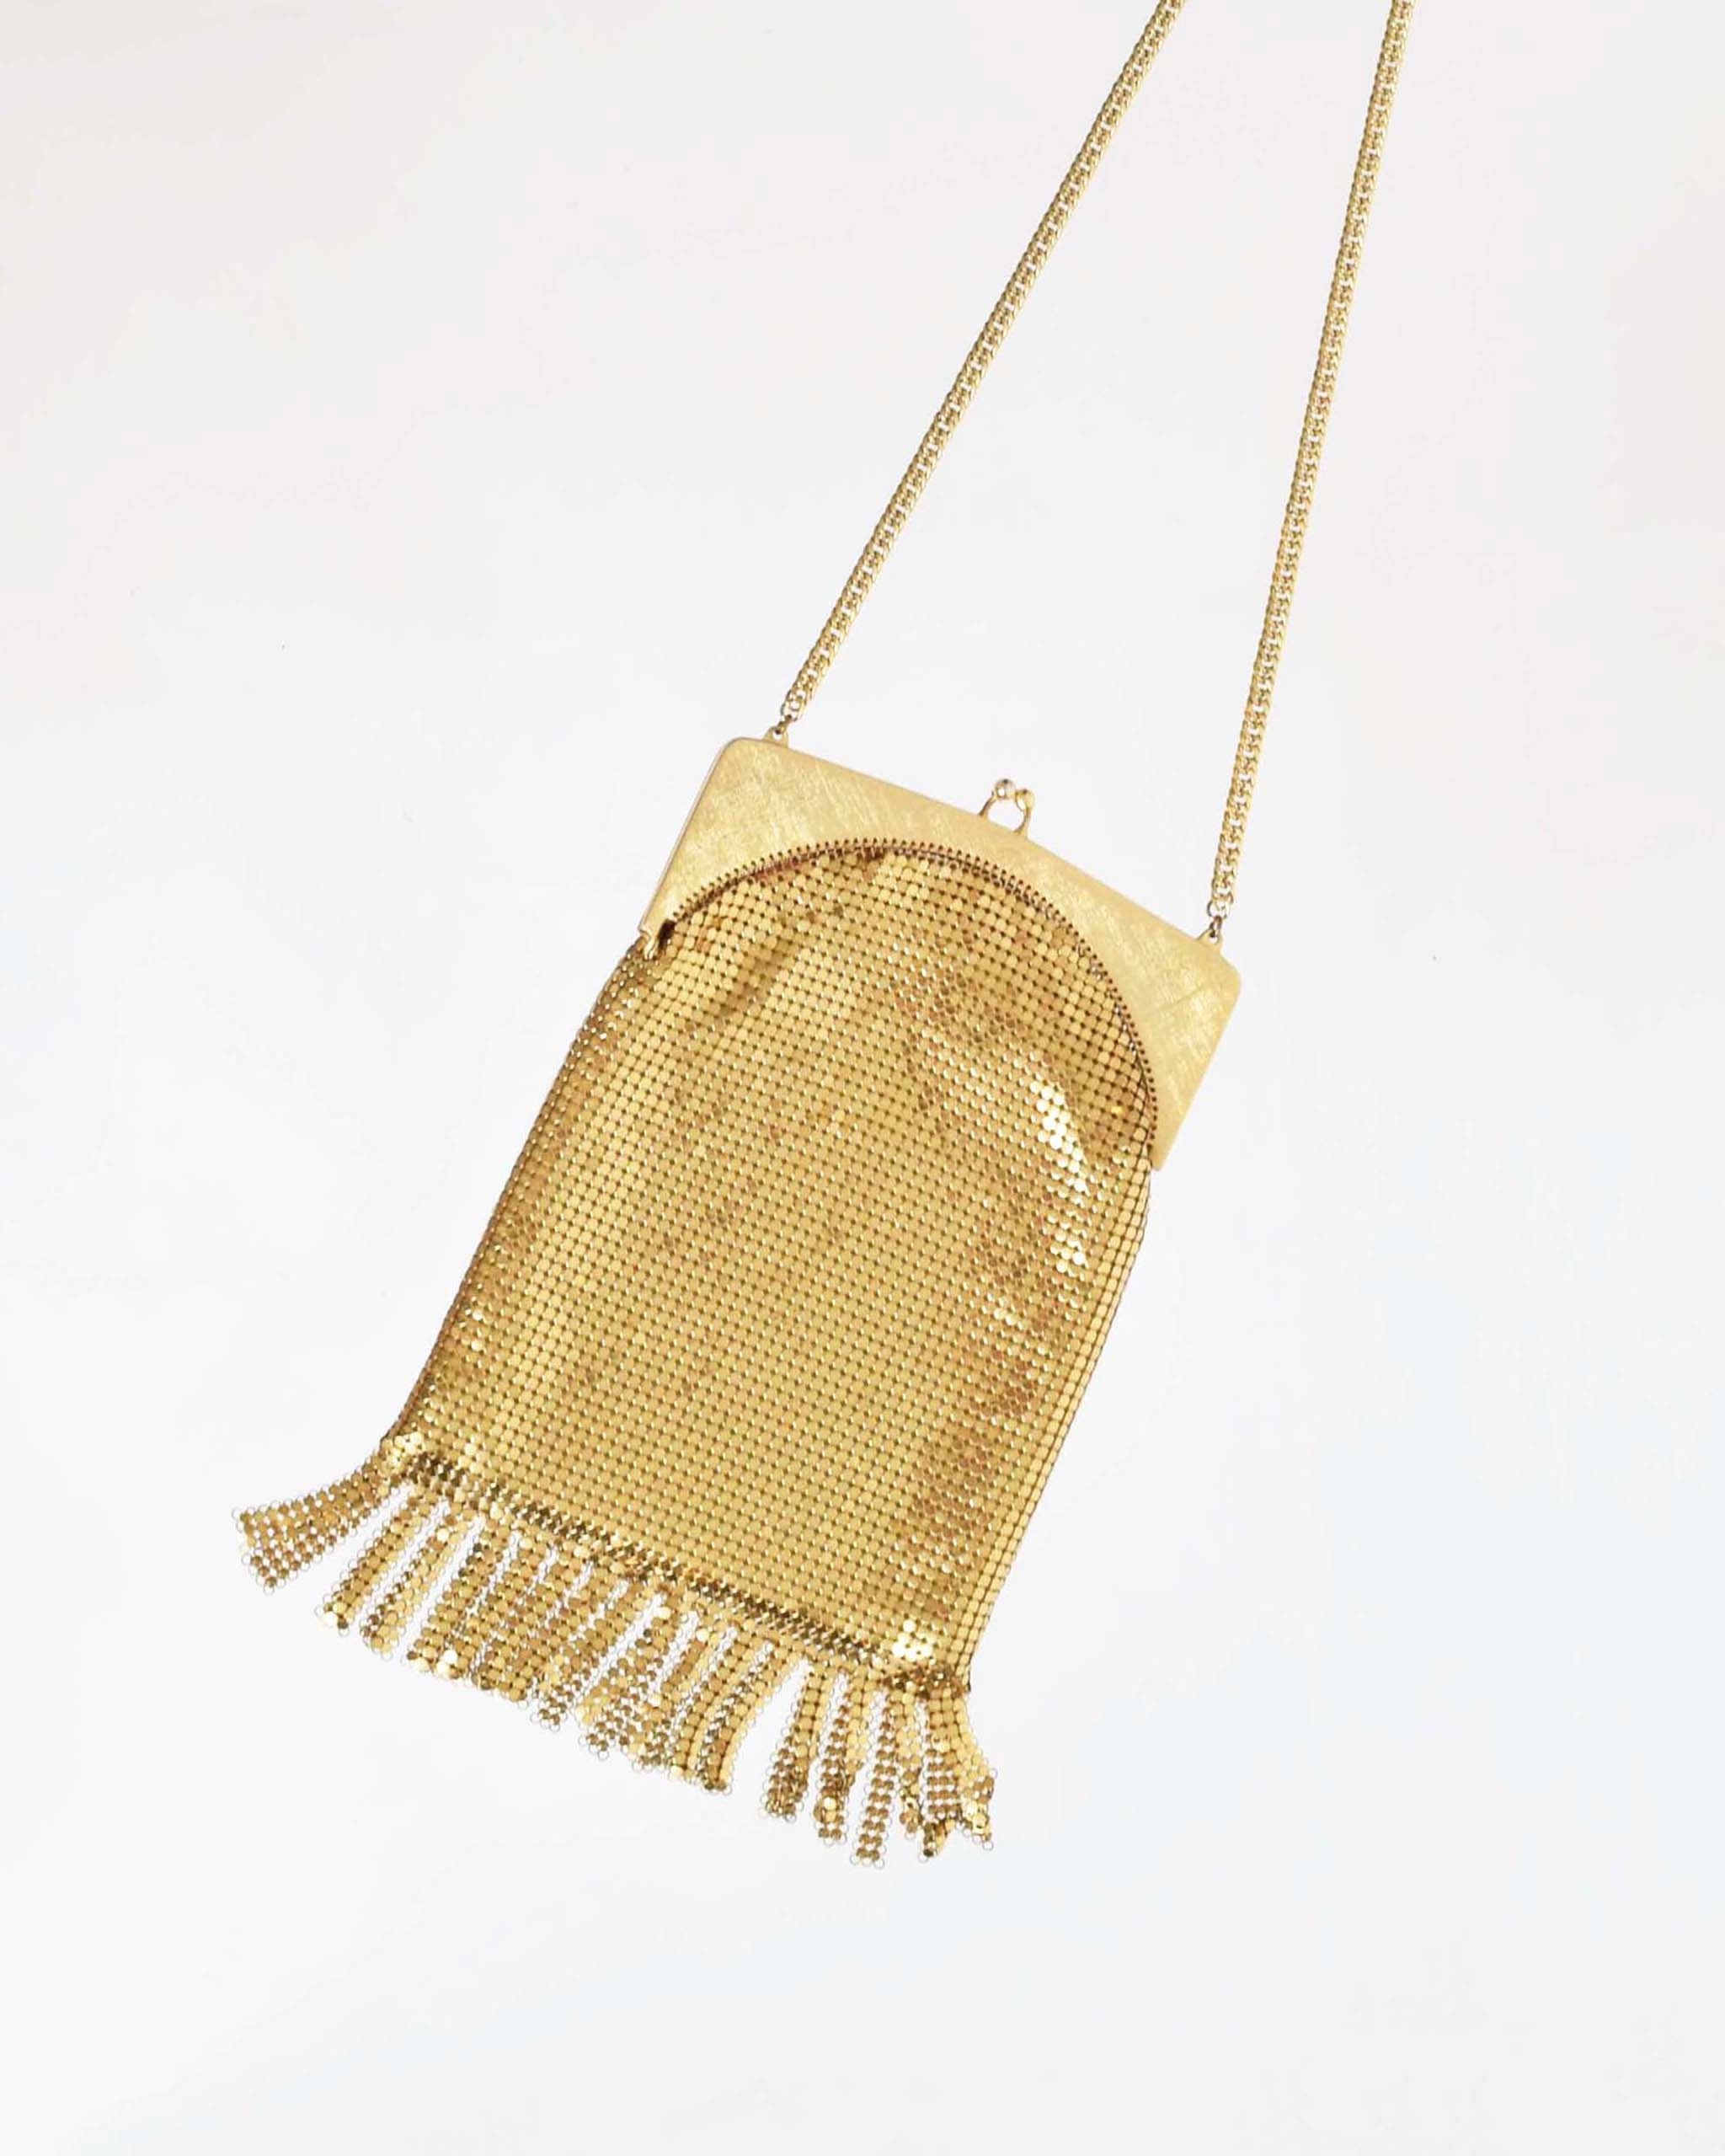 Vintage Whiting & Davis Fringed Evening Bag